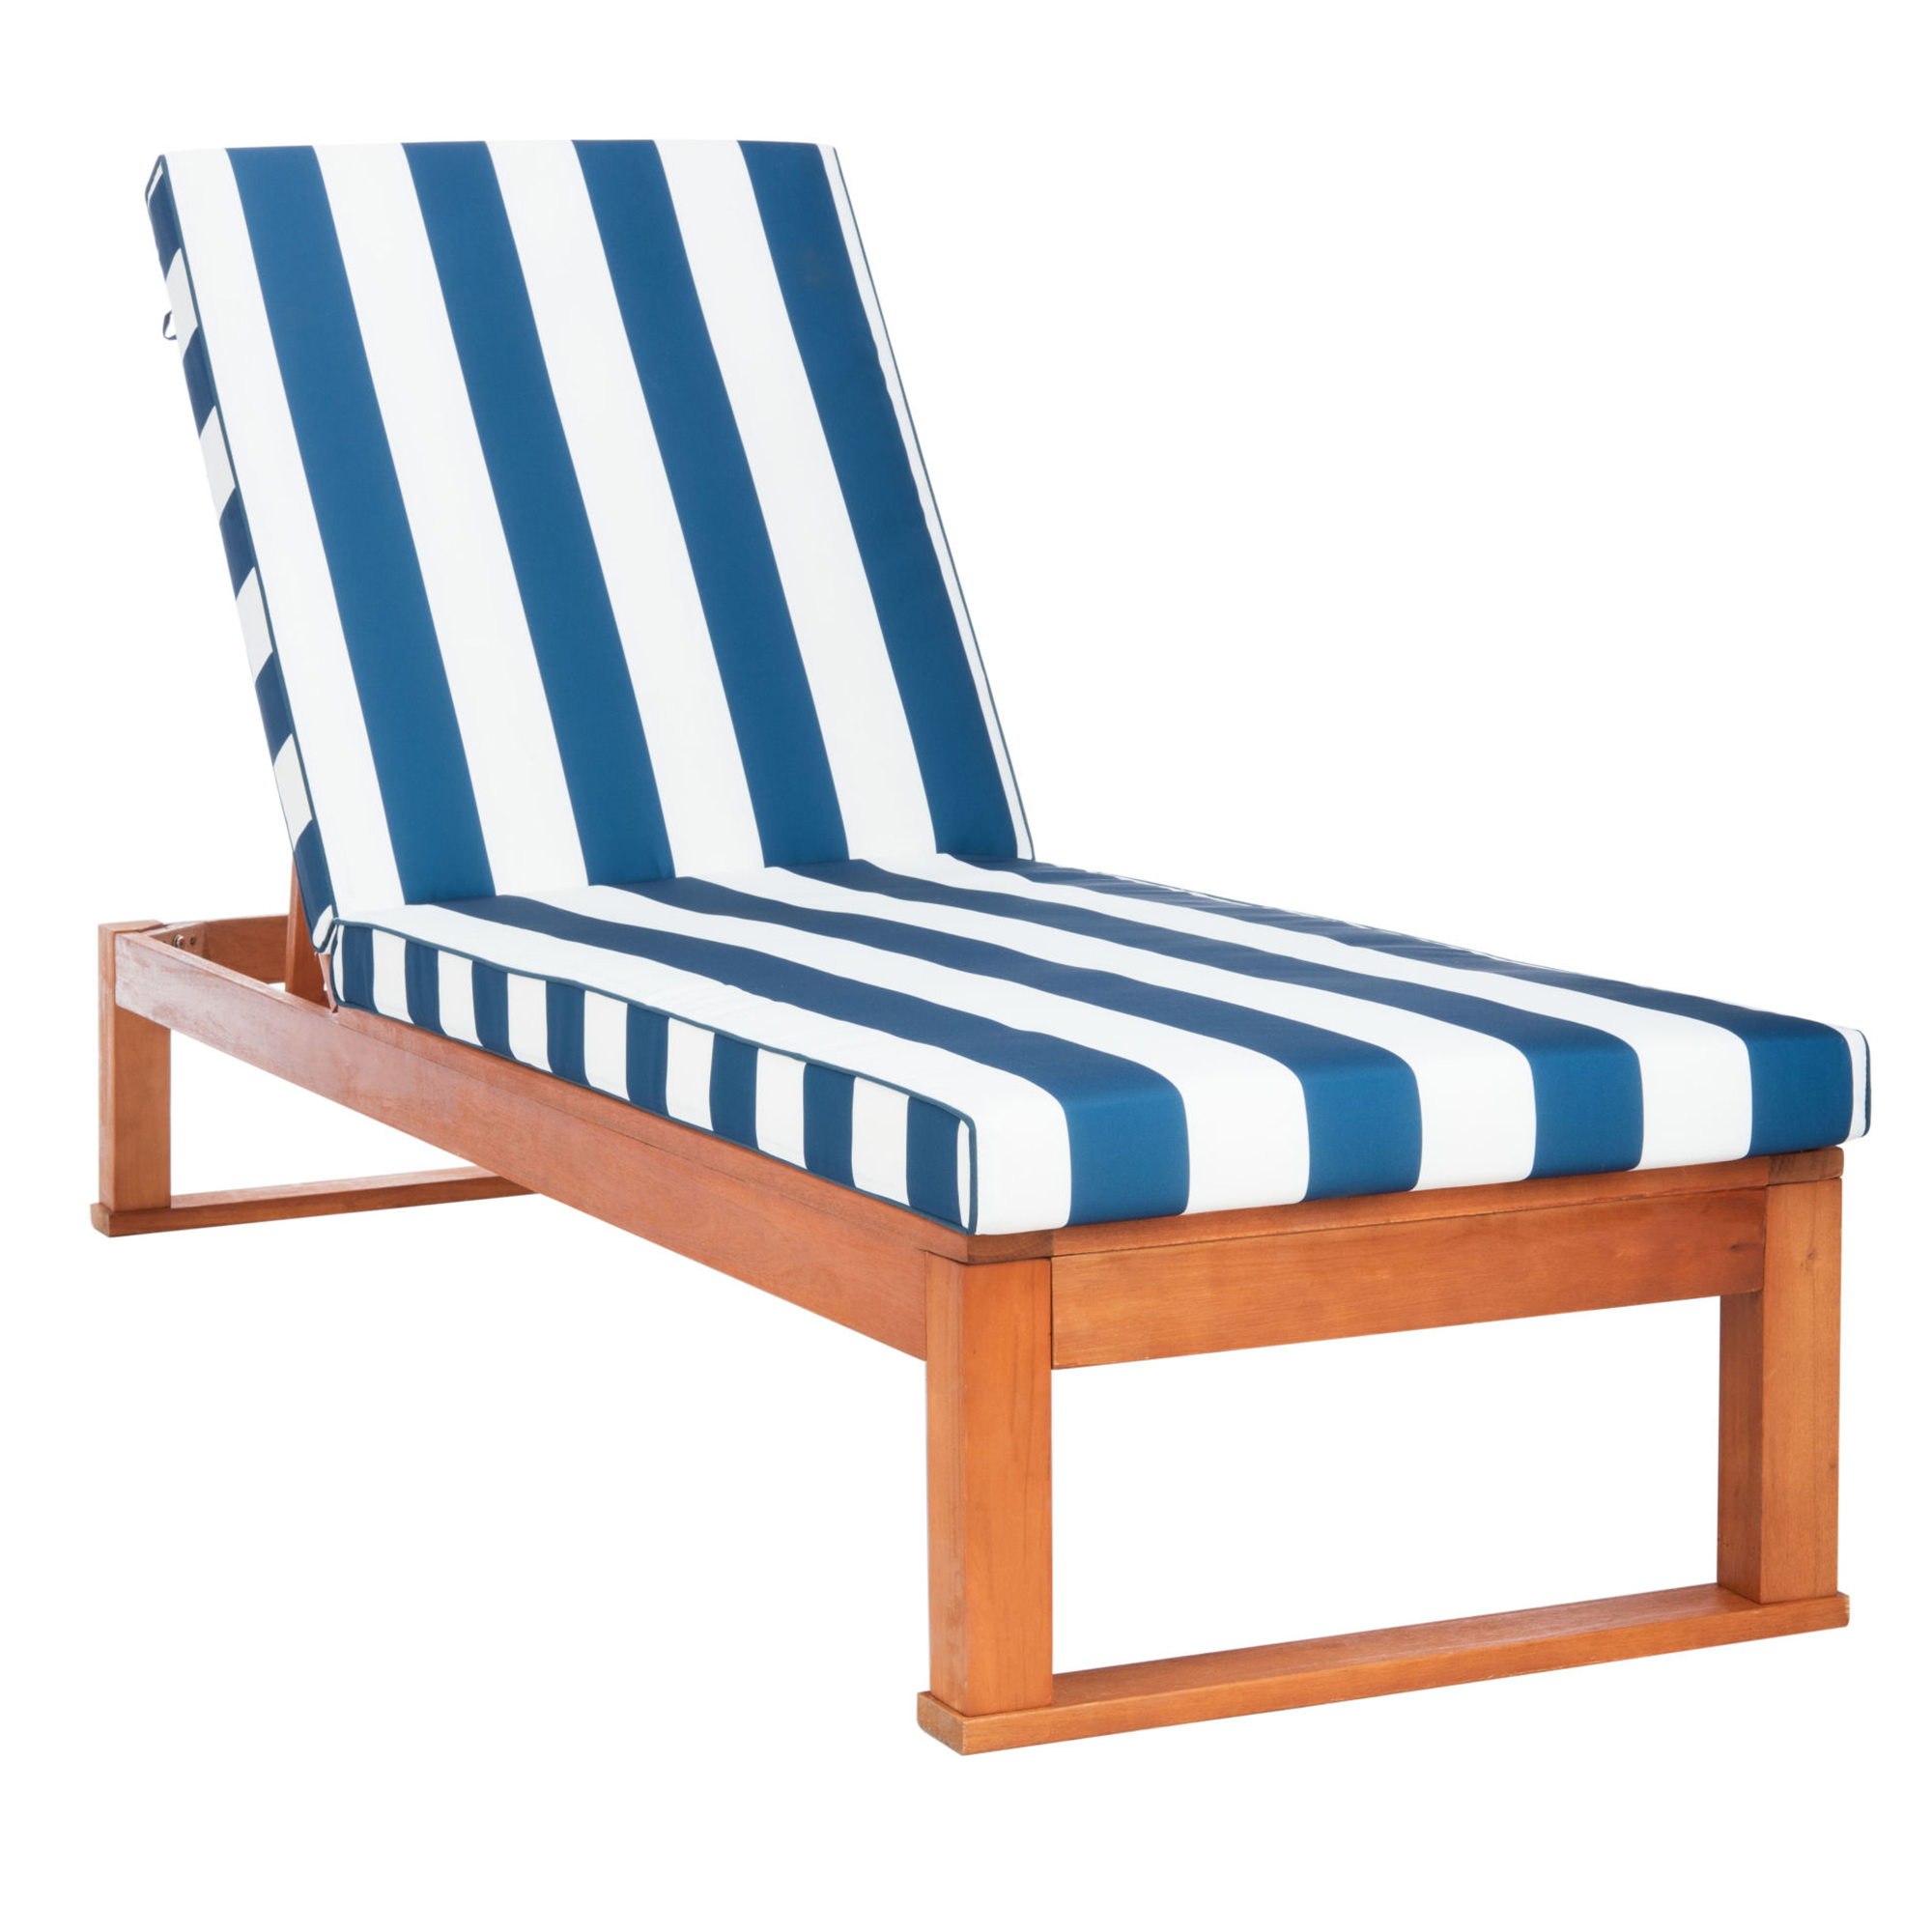 Solano Sunlounger on Safavieh Outdoor Living Solano Sunlounger id=58661